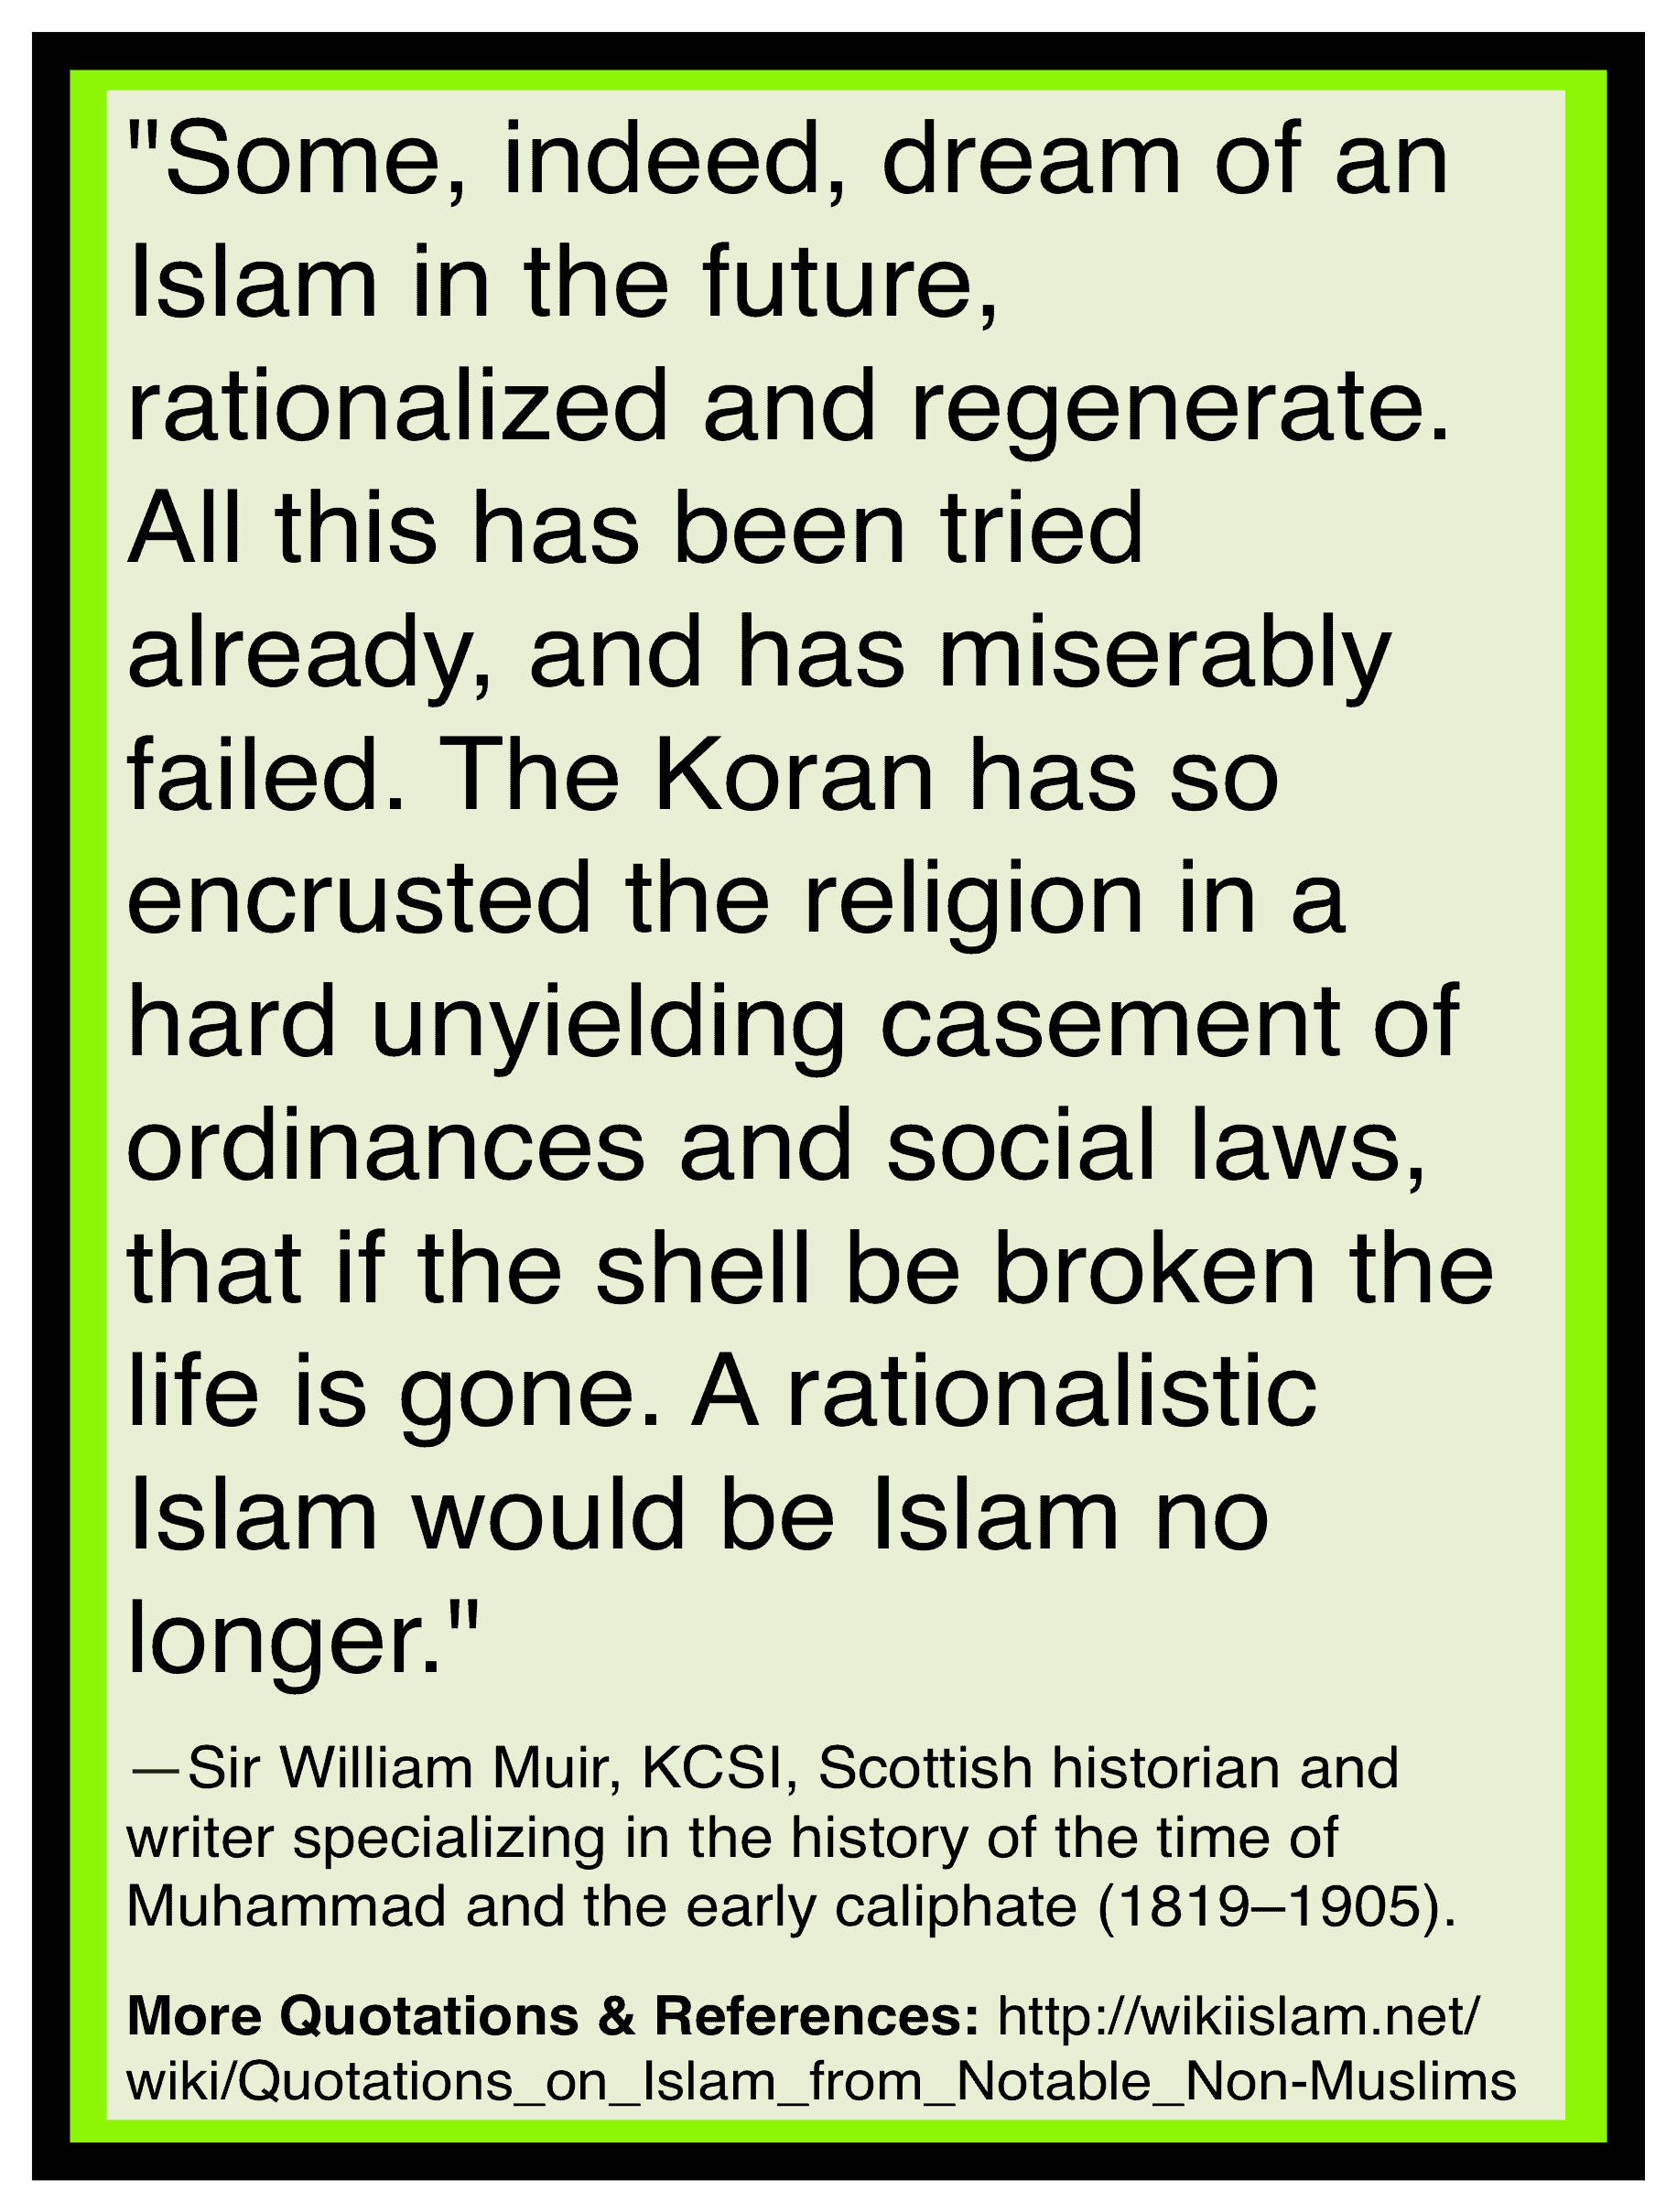 Islam cannot be reformed